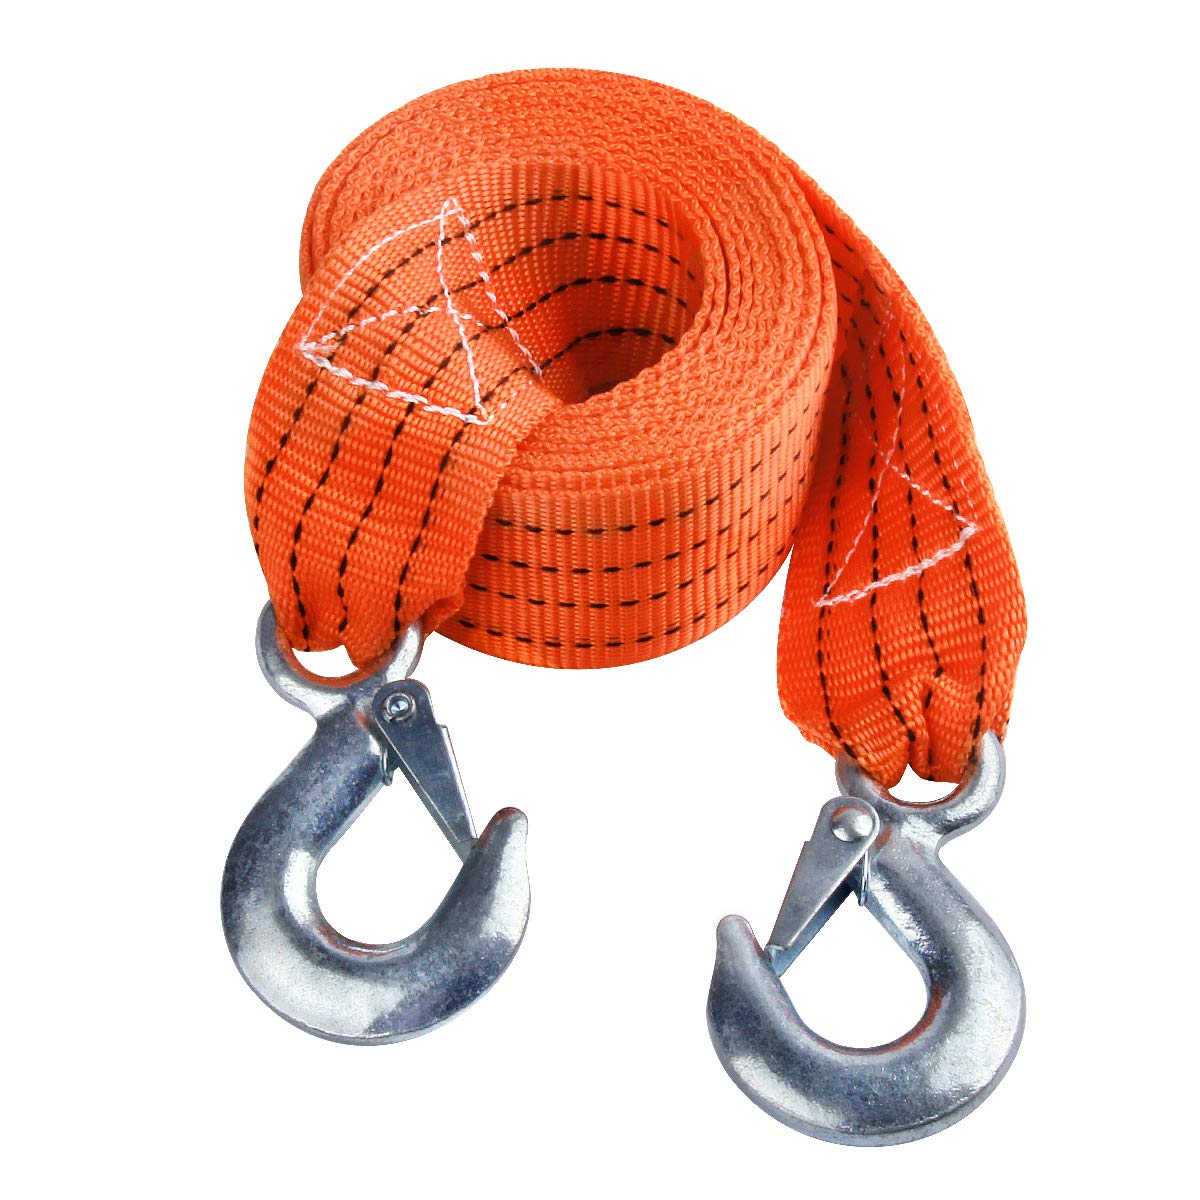 JCHL Tow Strap with Hooks 2in X20Ft Recovery Strap 10,000LB Break Strengthened Towing Rope for Towing Vehicles in Roadside Emergency by JCHL